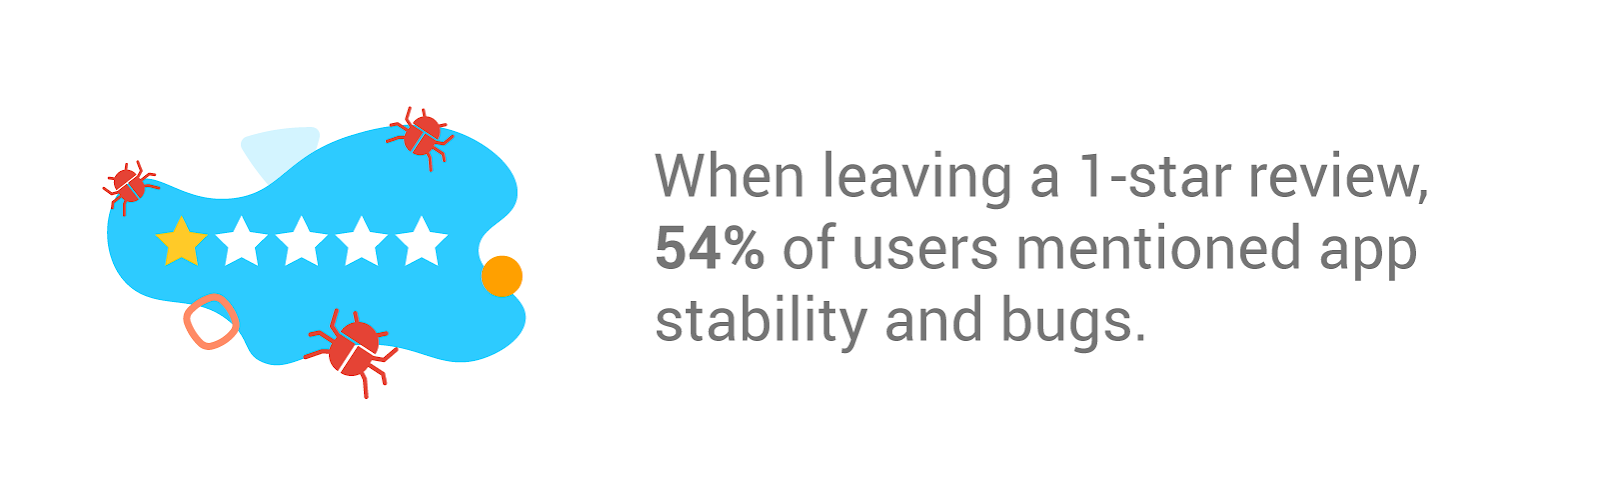 image showing why users leave one star reviews